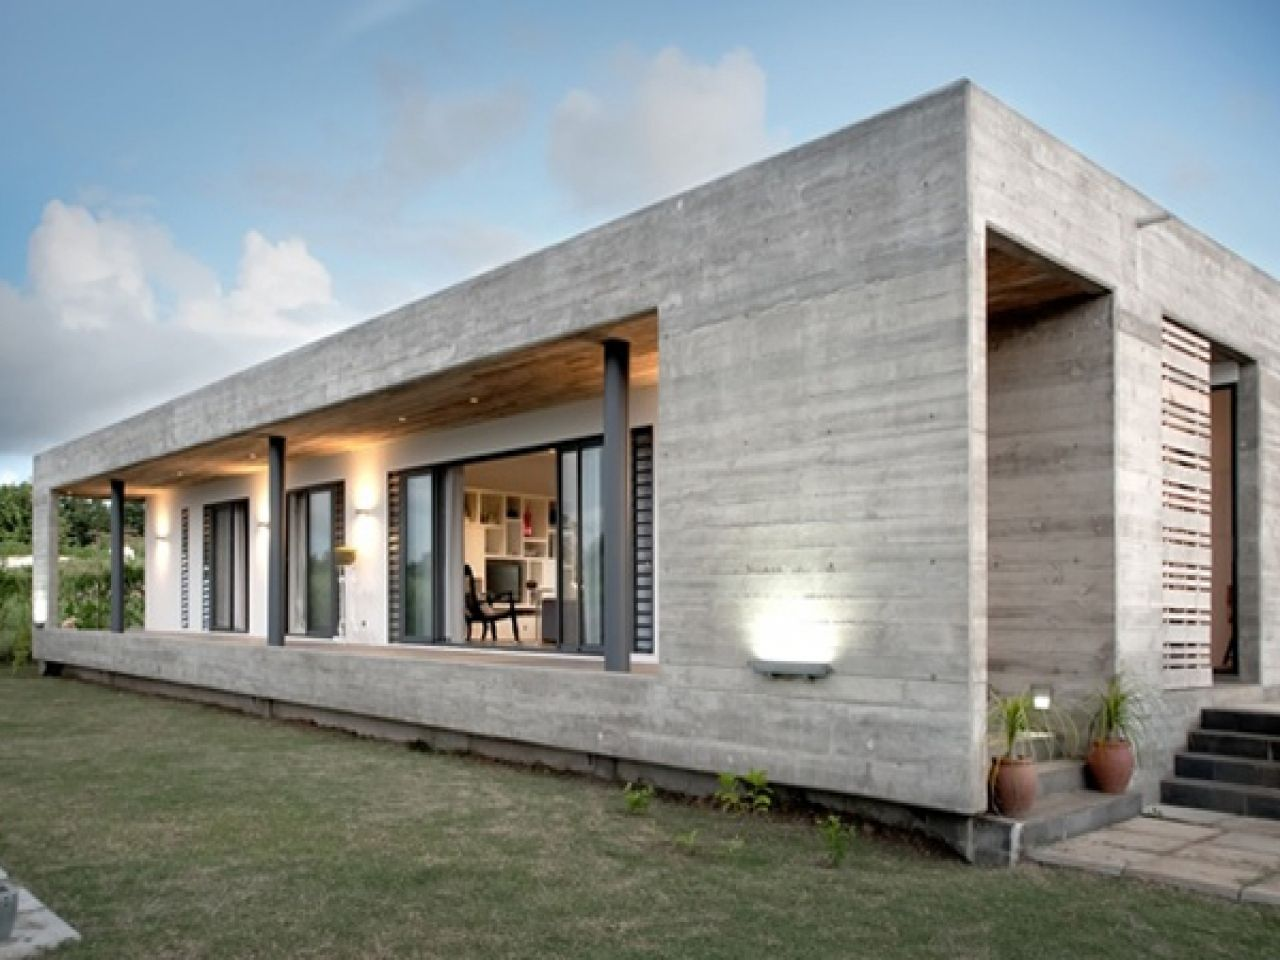 Concrete Home House Design Concrete Block Home Concrete House Concrete Houses House Exterior